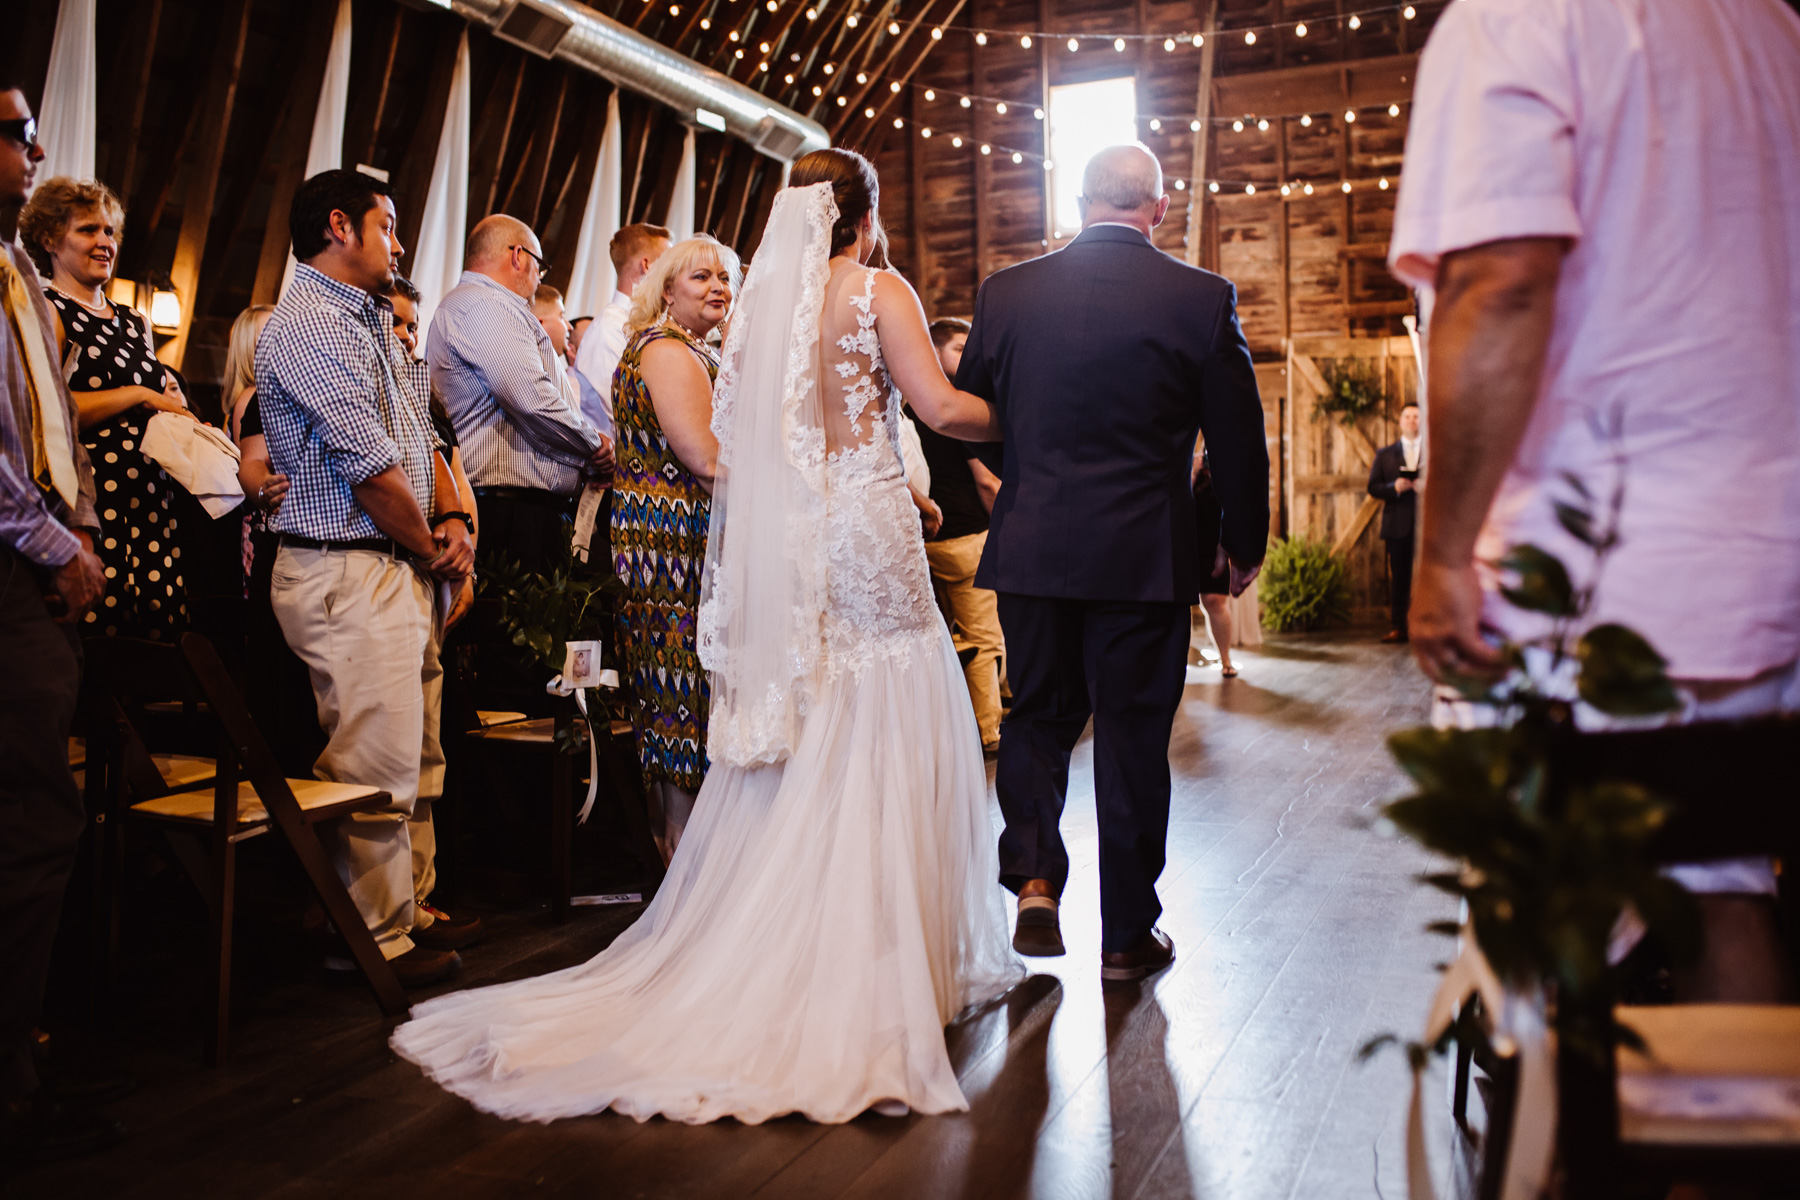 Millikan Farms Sophia, NC Wedding Venue | Kayli LaFon Photography